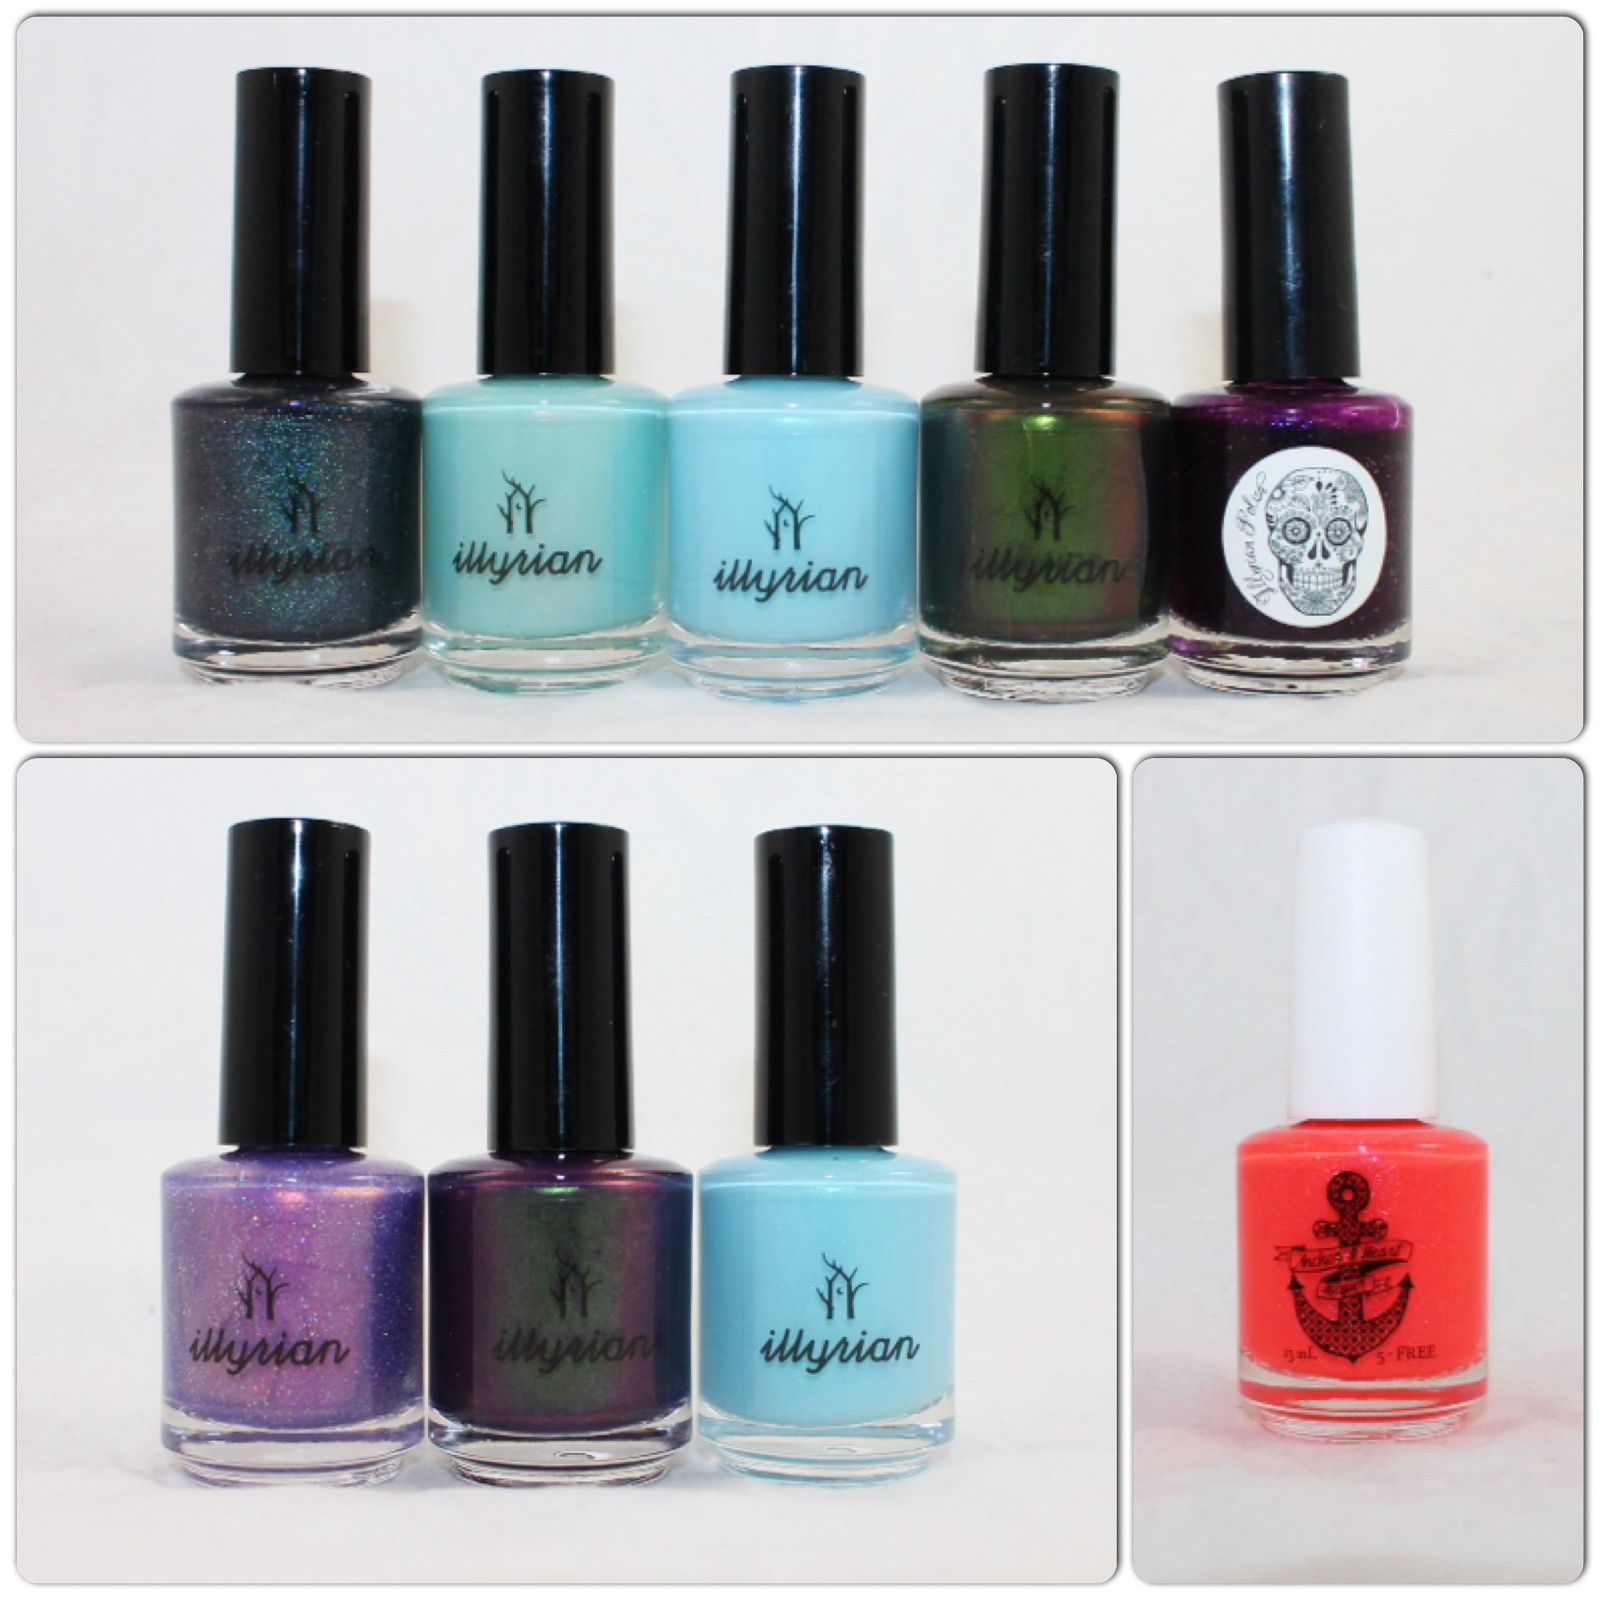 IllyrianPpolish Cosmic Moment, Dream Catcher, Astral, Talisman, Witching Hour, Awaken Your Magic, Dream Hopper, Astral. Anchor & Heart Lacquer Vacation Land.